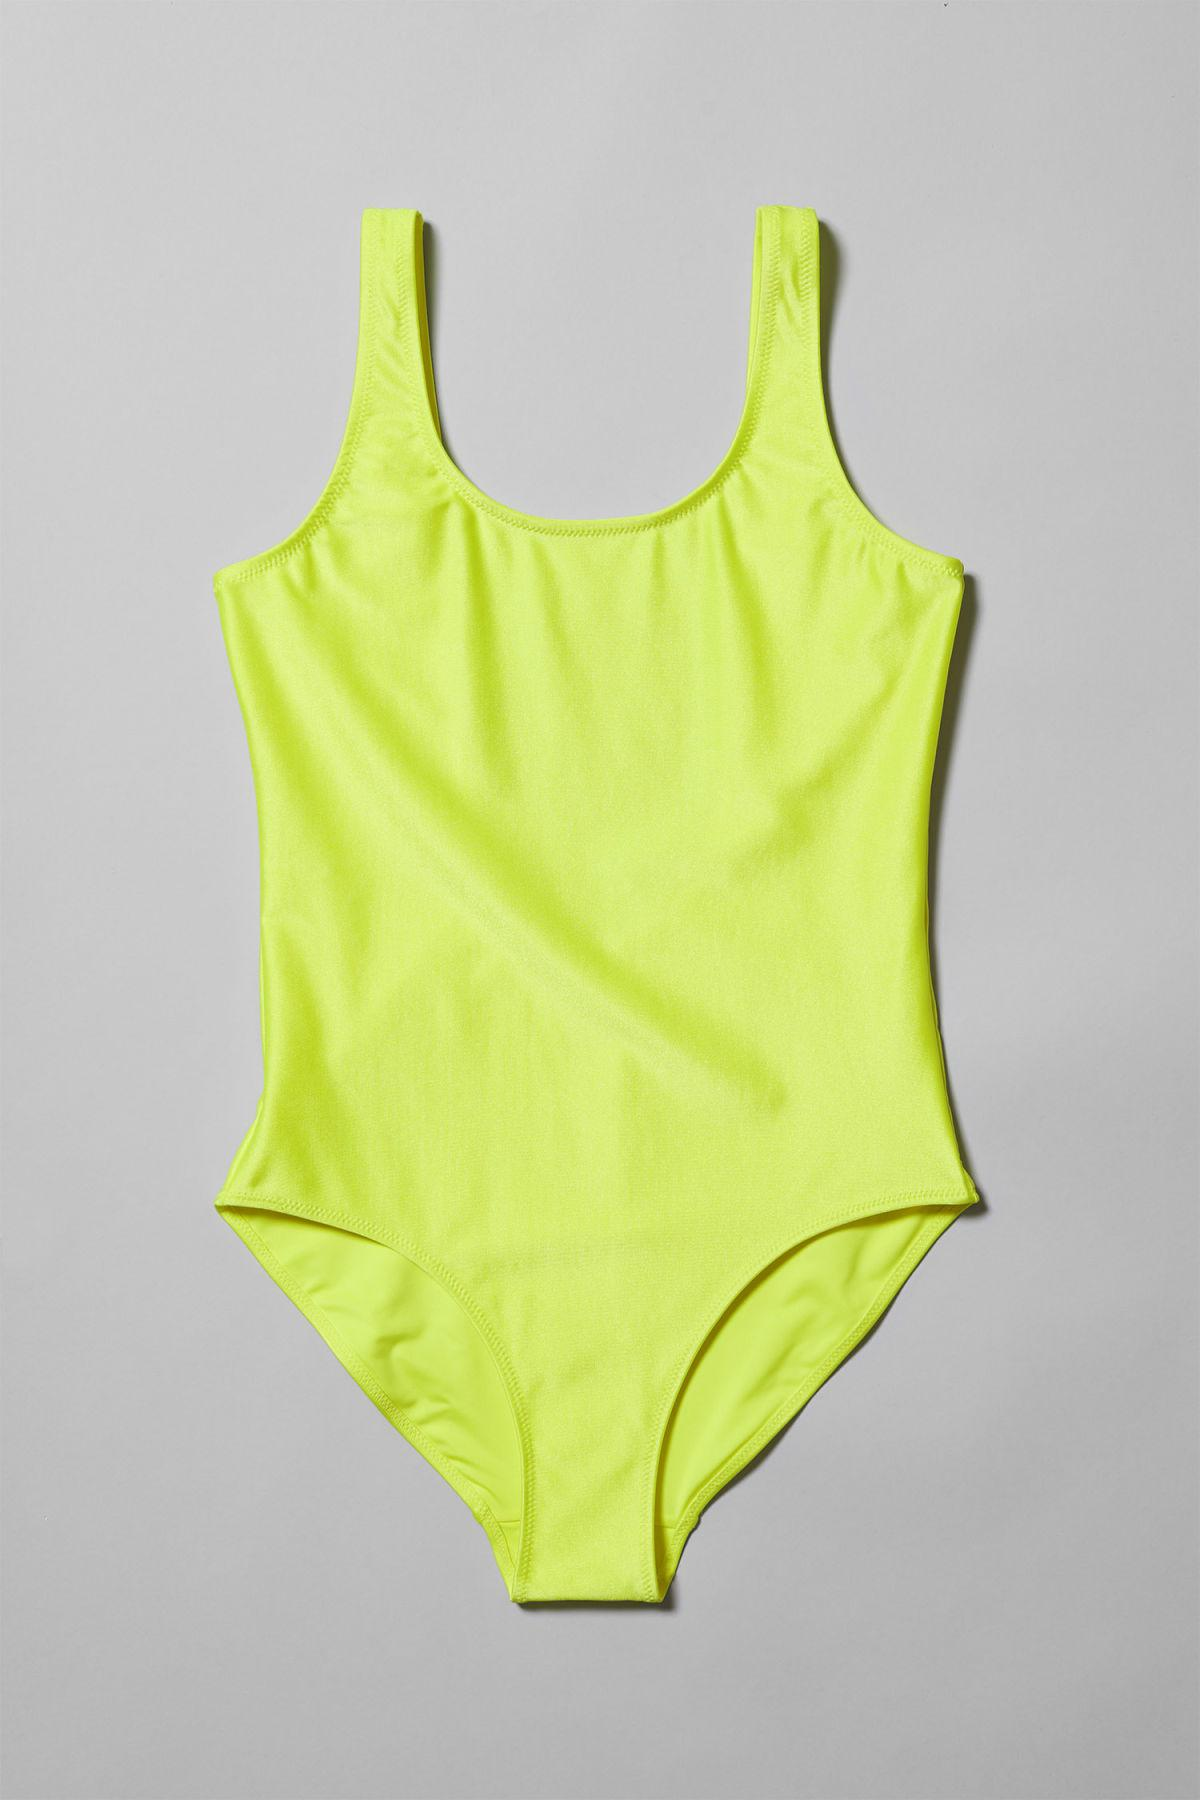 34a8b5545aed85 Weekday Day Swimsuit in Yellow - Lyst